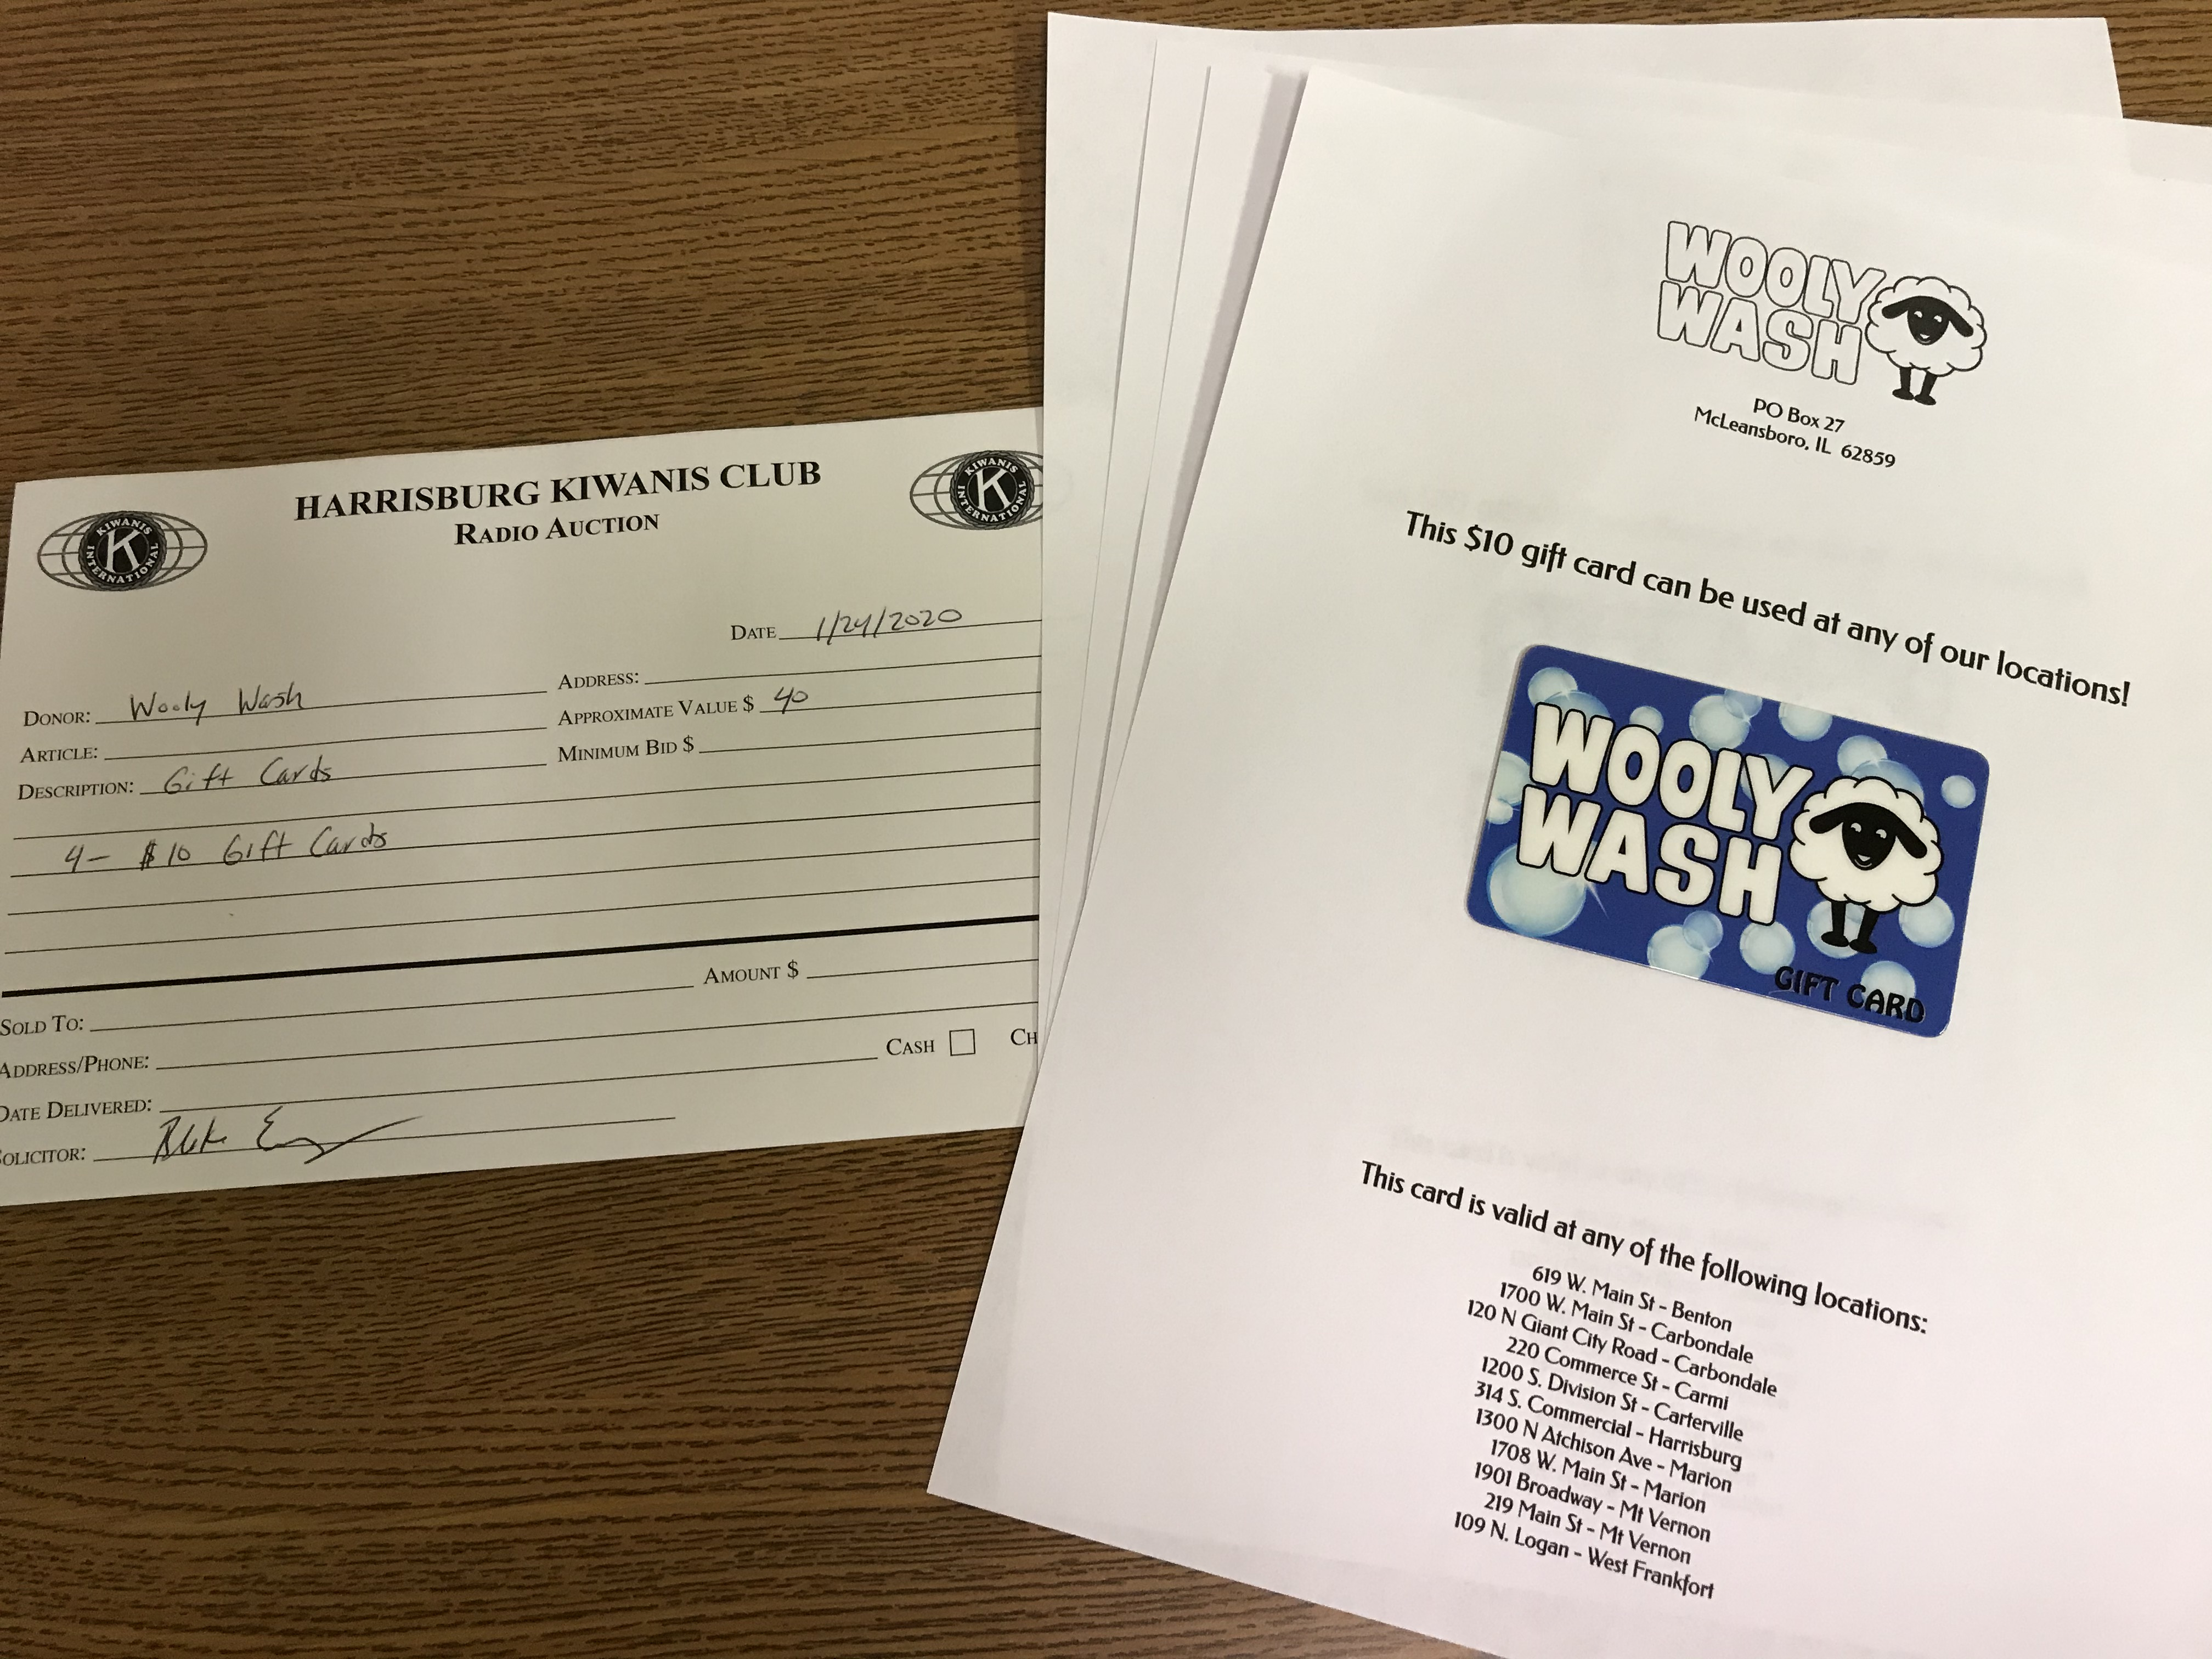 Item 429 - Wooly Wash 4 - $10 Gift Cards